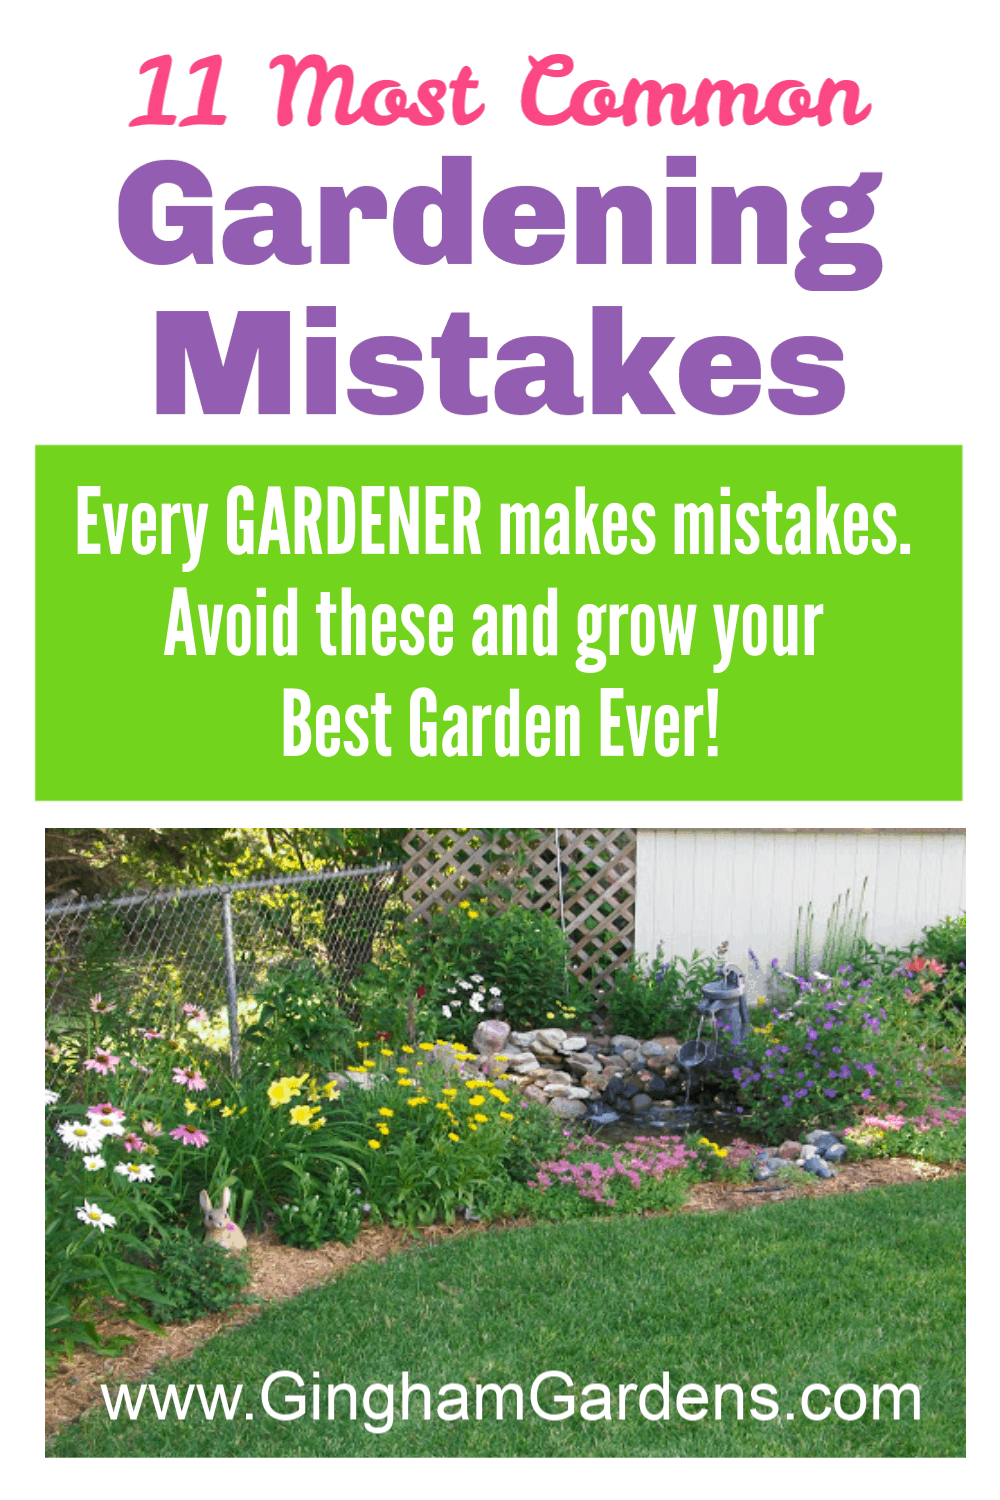 Image of a Garden with text overlay 11 Most Common gardening mistakes